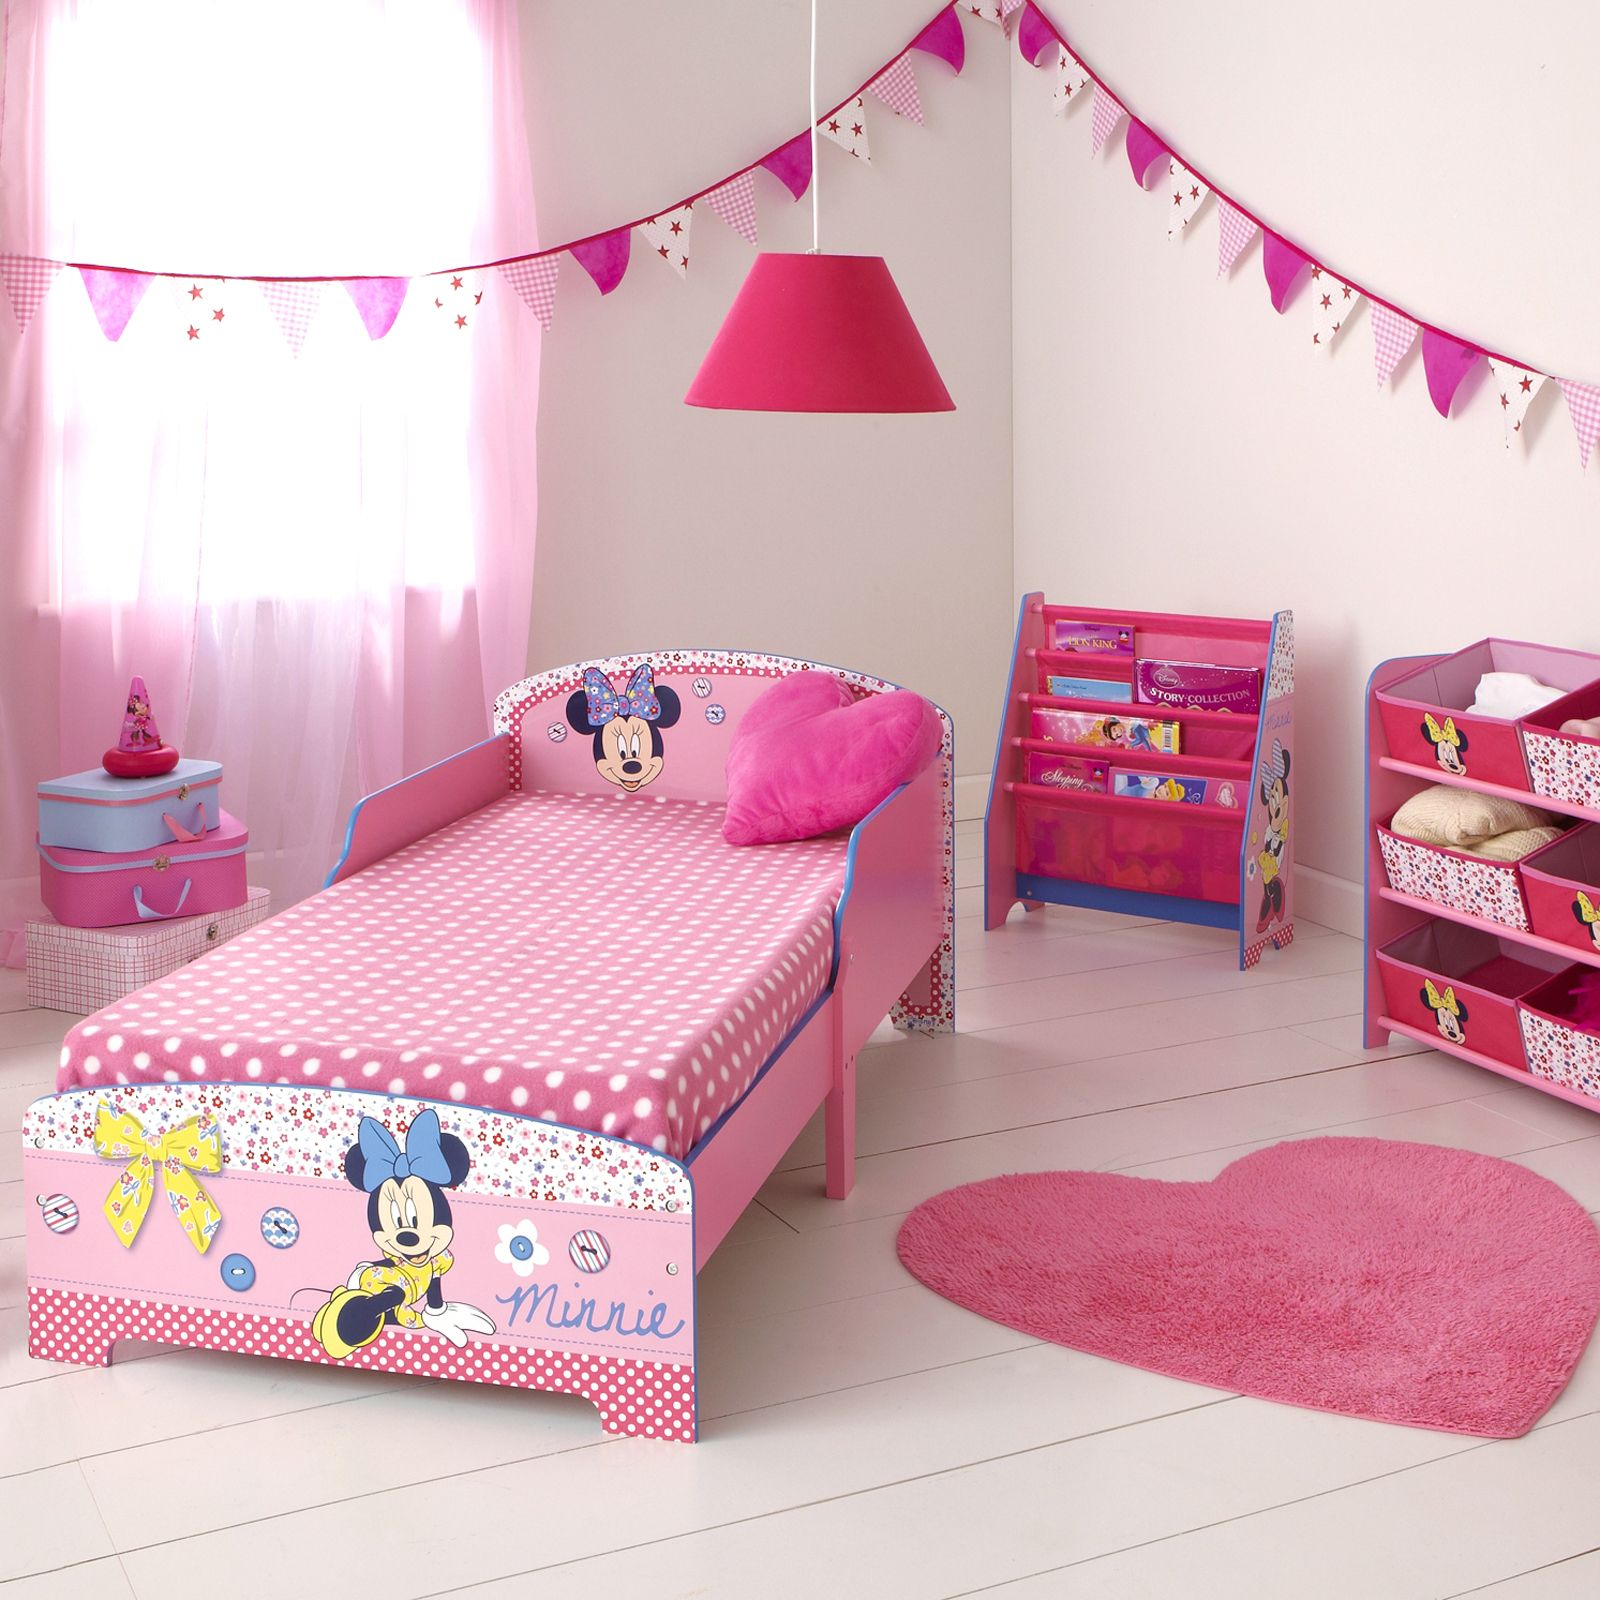 minnie mouse mdf kleinkind bett neu offiziell kinder m bel ebay. Black Bedroom Furniture Sets. Home Design Ideas